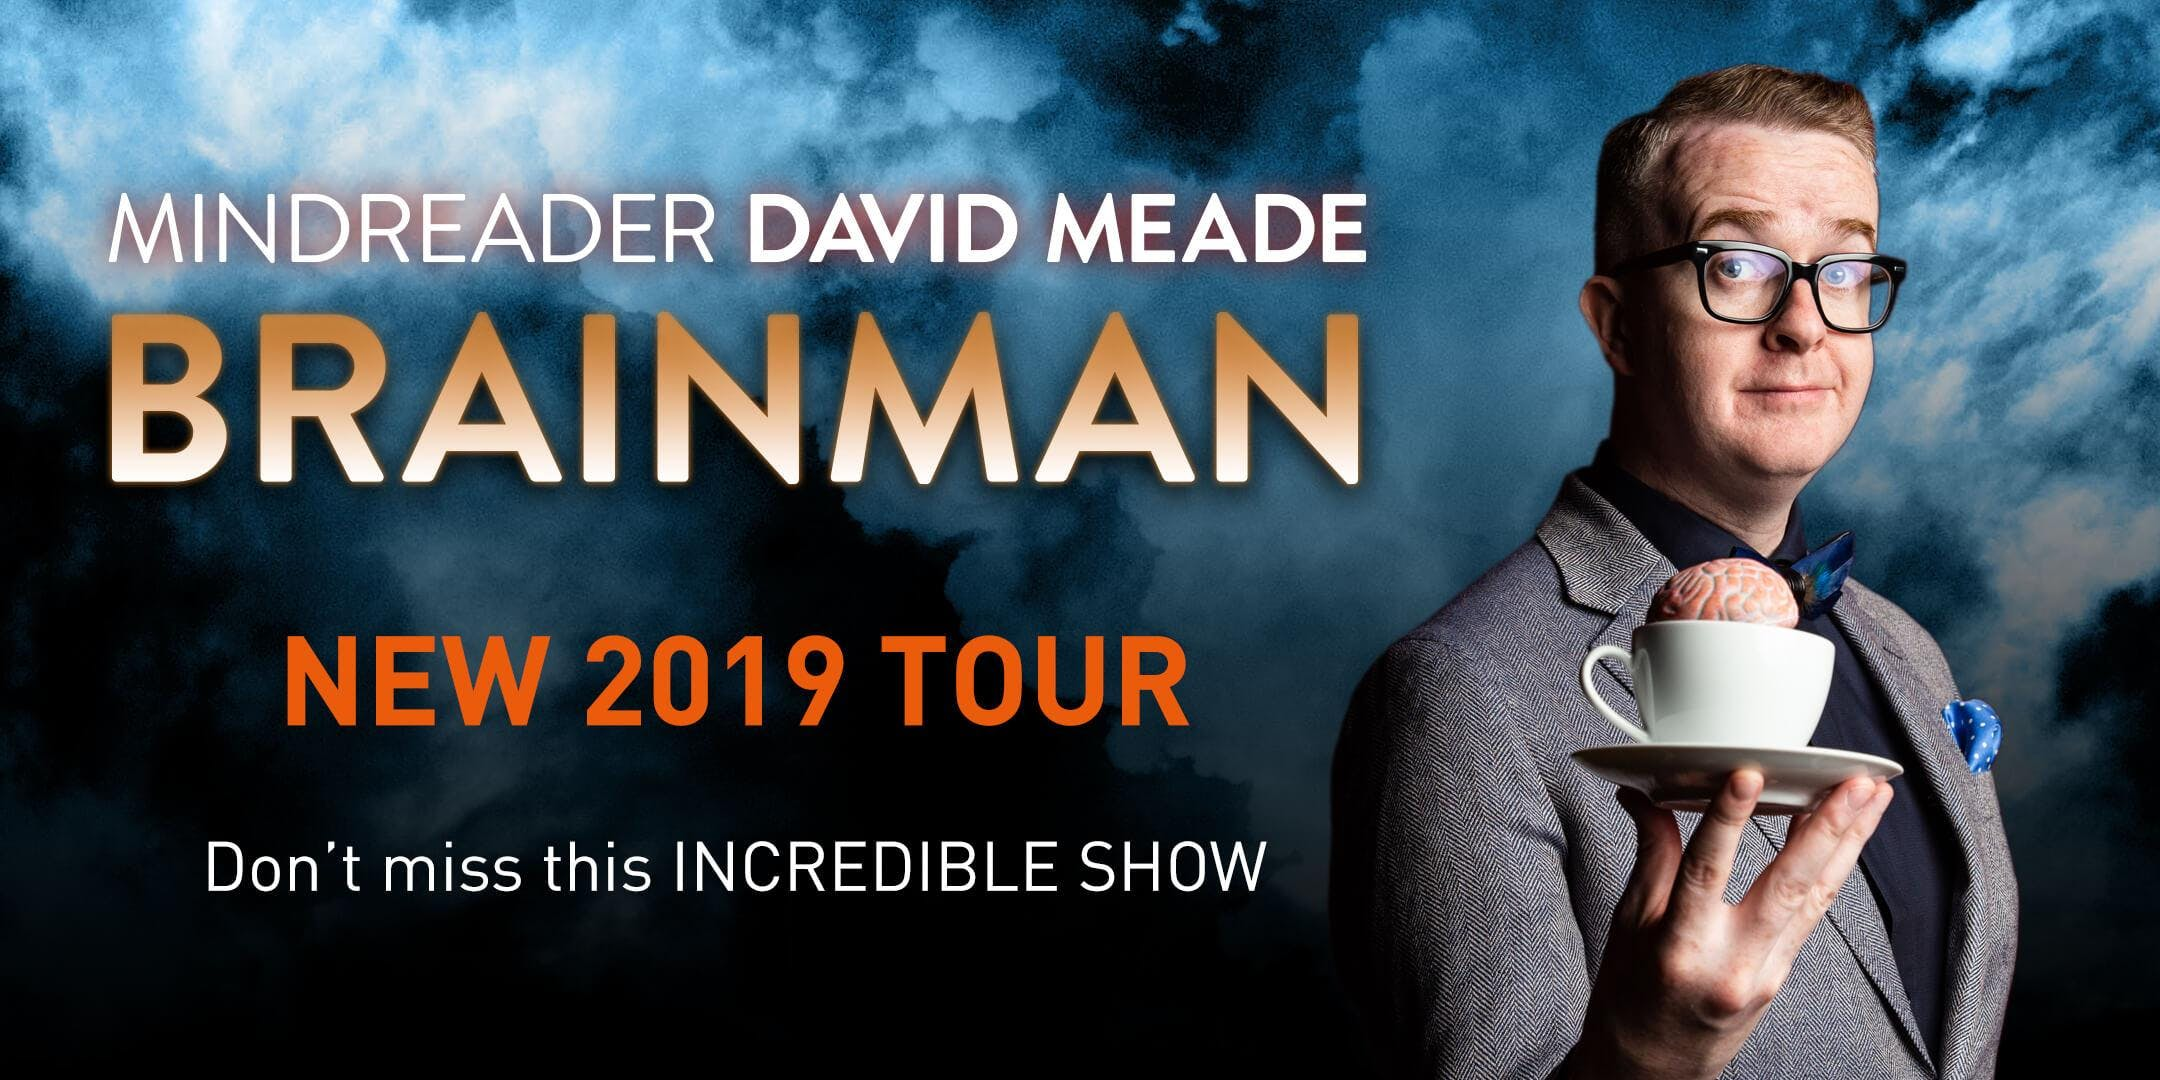 David Meade Mindreader: BRAINMAN - Newry, Town Hall